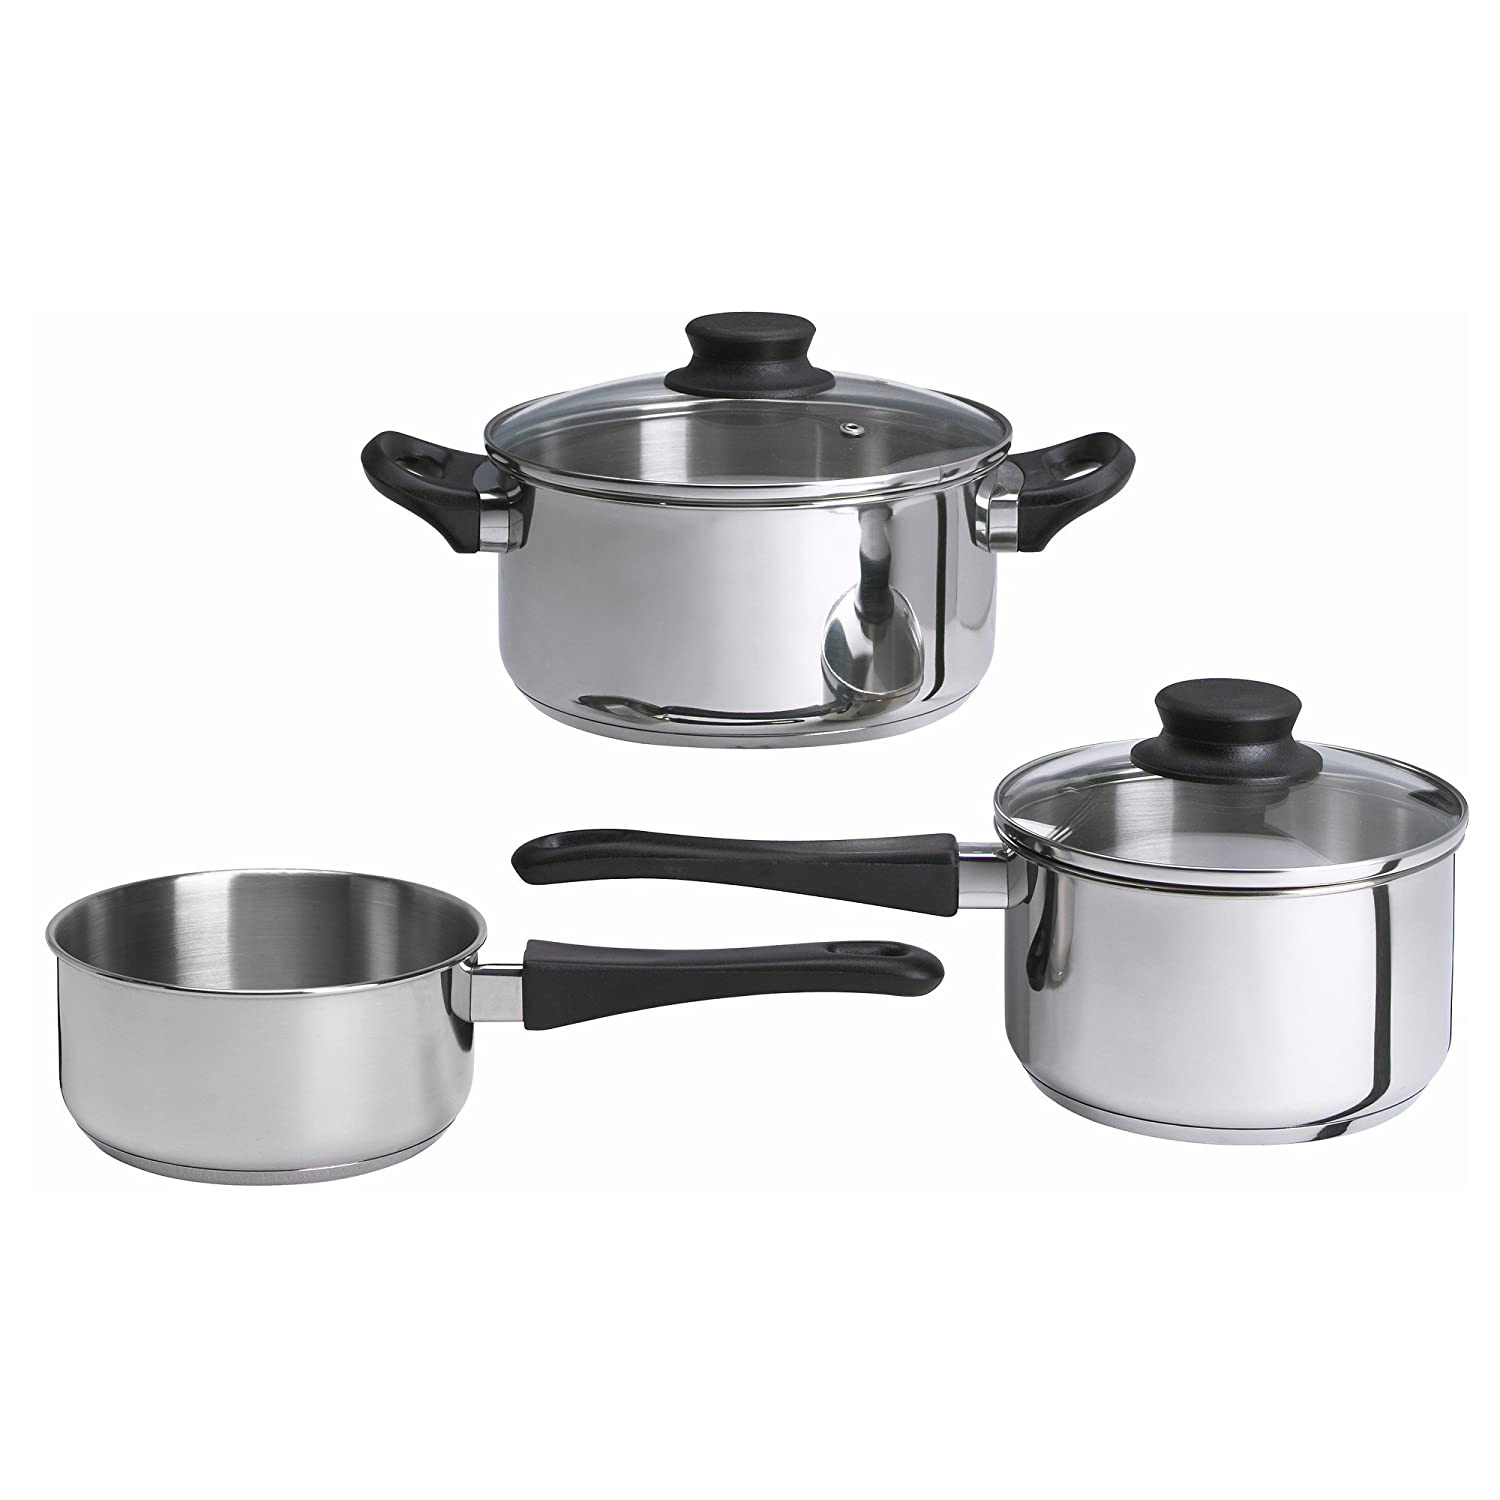 Ikea Annons 5-piece Cookware Set, Stainless Steel